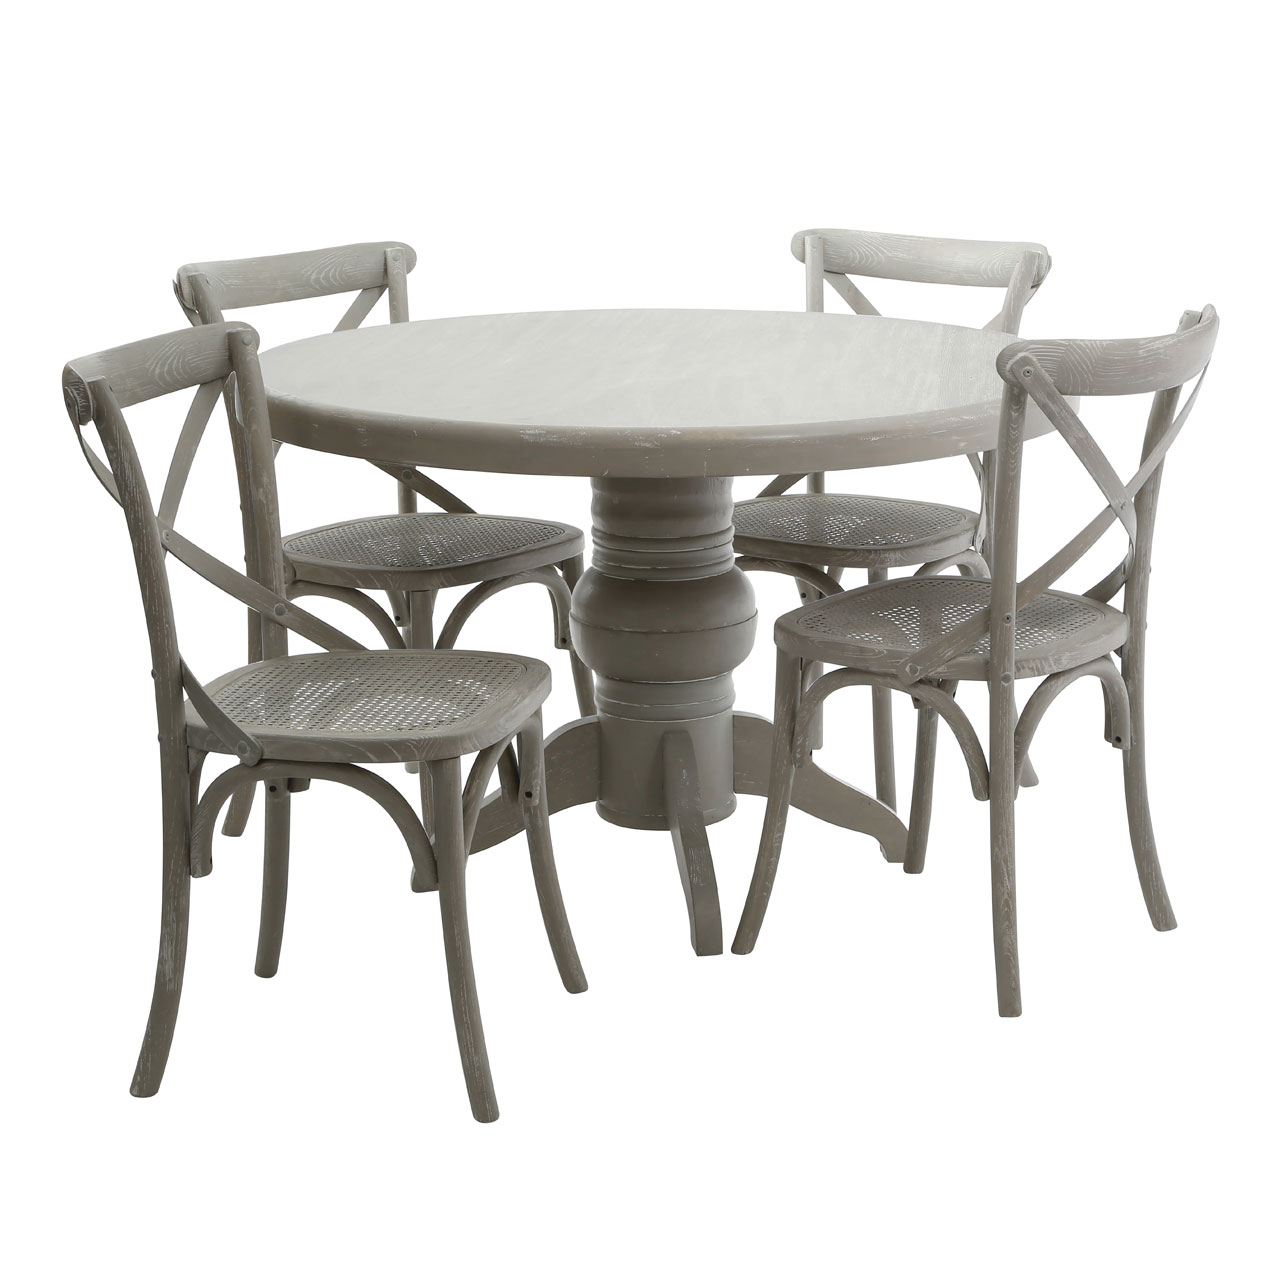 Details About Vermont 5pc Dining Set Grey Wash Wooden Round Table 4 Chairs Home Furniture